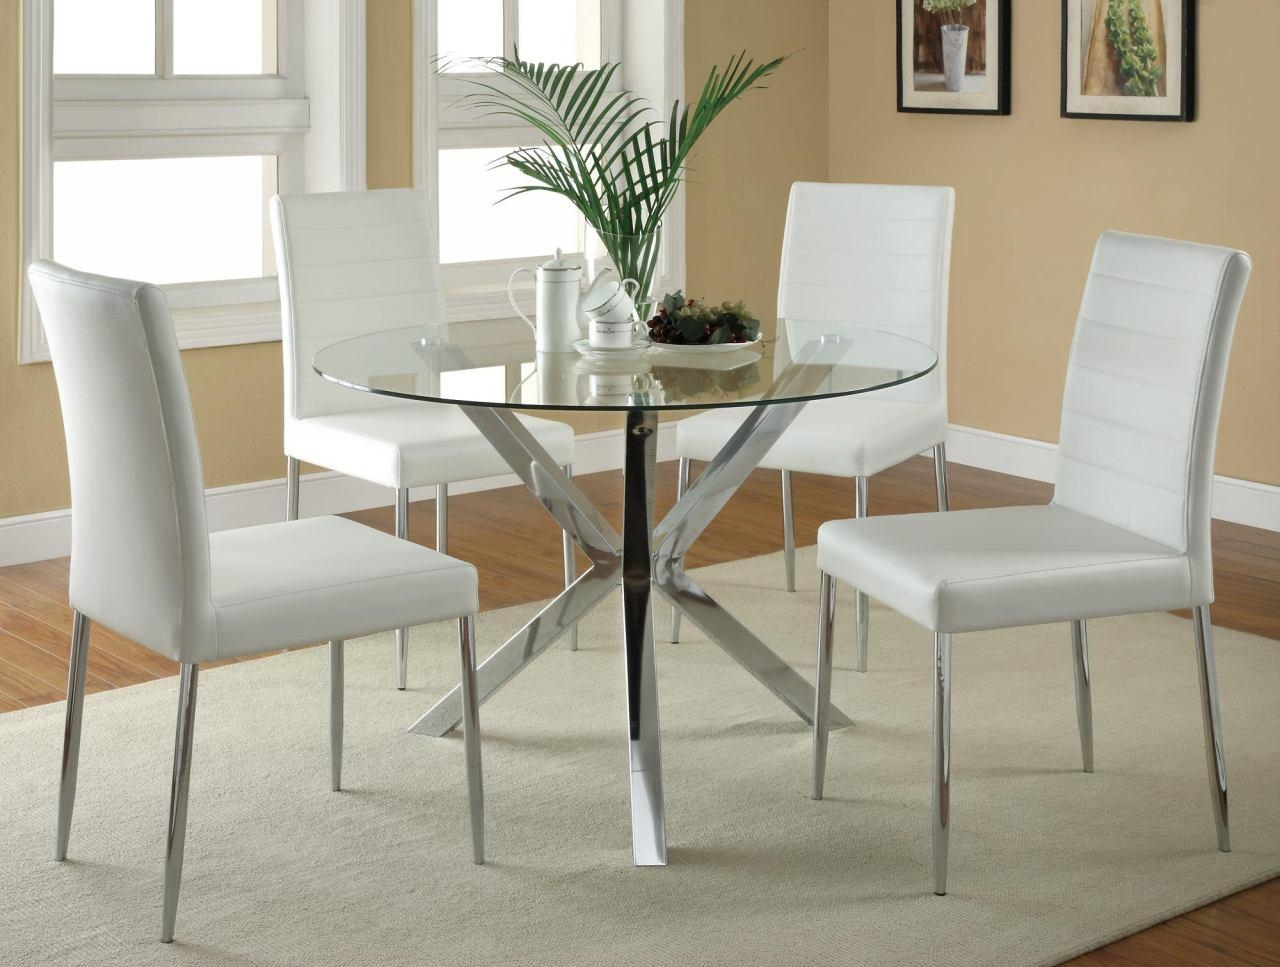 Coaster Vance Glass Top W/ Chrome Base Dining Set W/ White Chairs Within Dining Table With Sofa Chairs (Image 12 of 20)